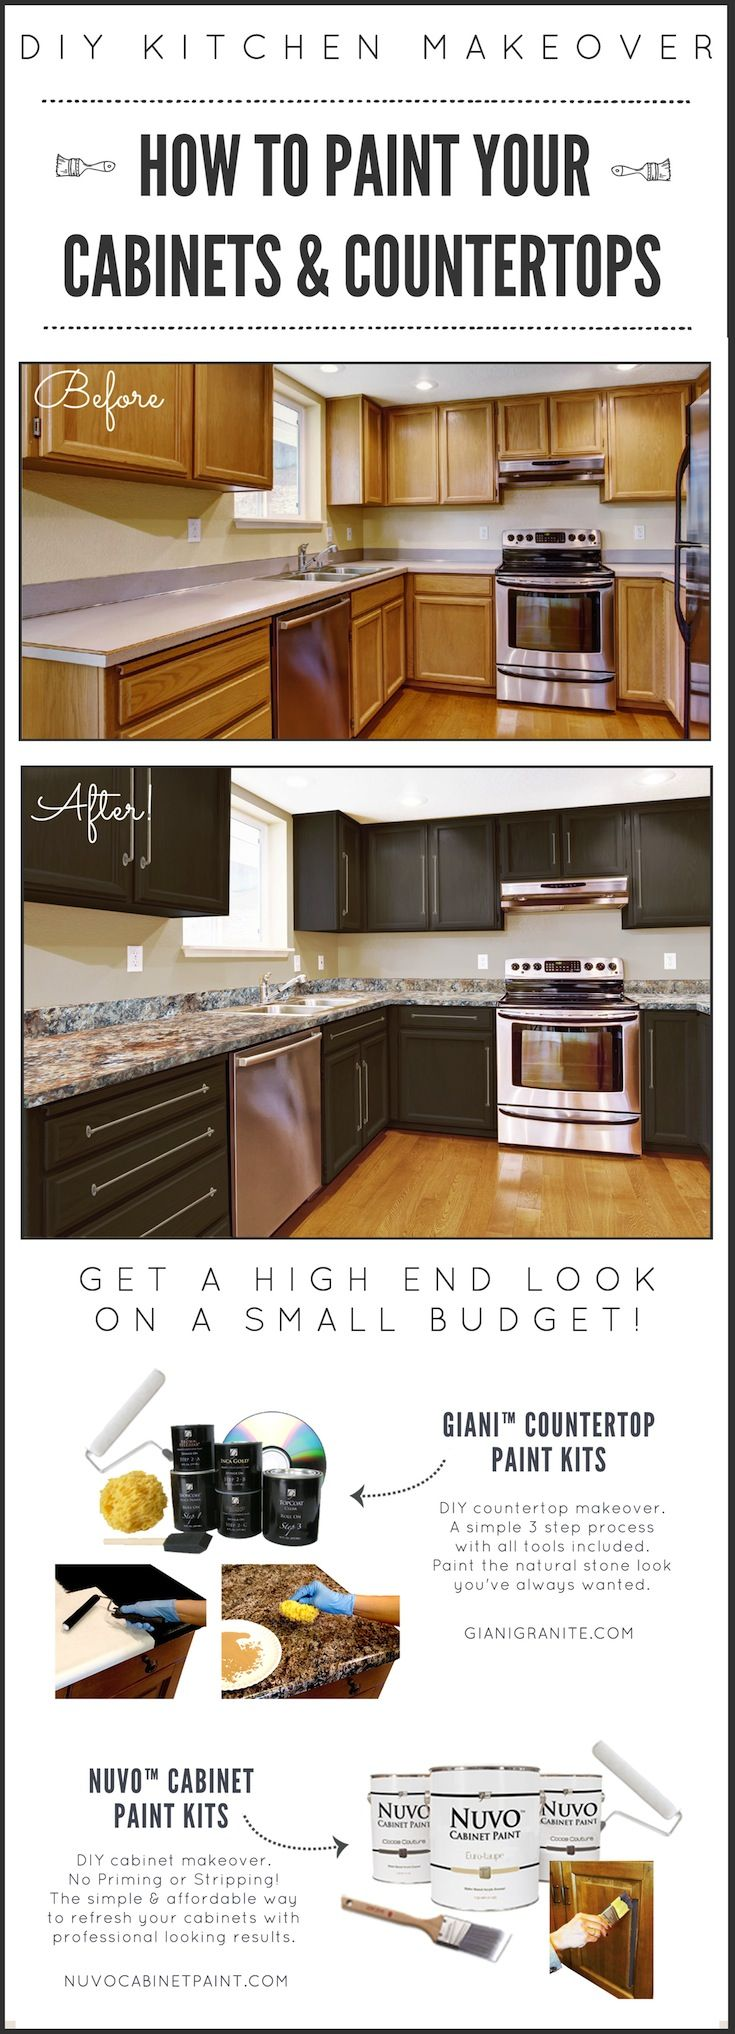 DIY Kitchen Makeover on a Budget. Before and After. Giani Granite Countertop Paint kits transform existing counters to the look of natural stone and Nuvo Cabinet Paint is a one-day makeover process. www.gianigranite.com